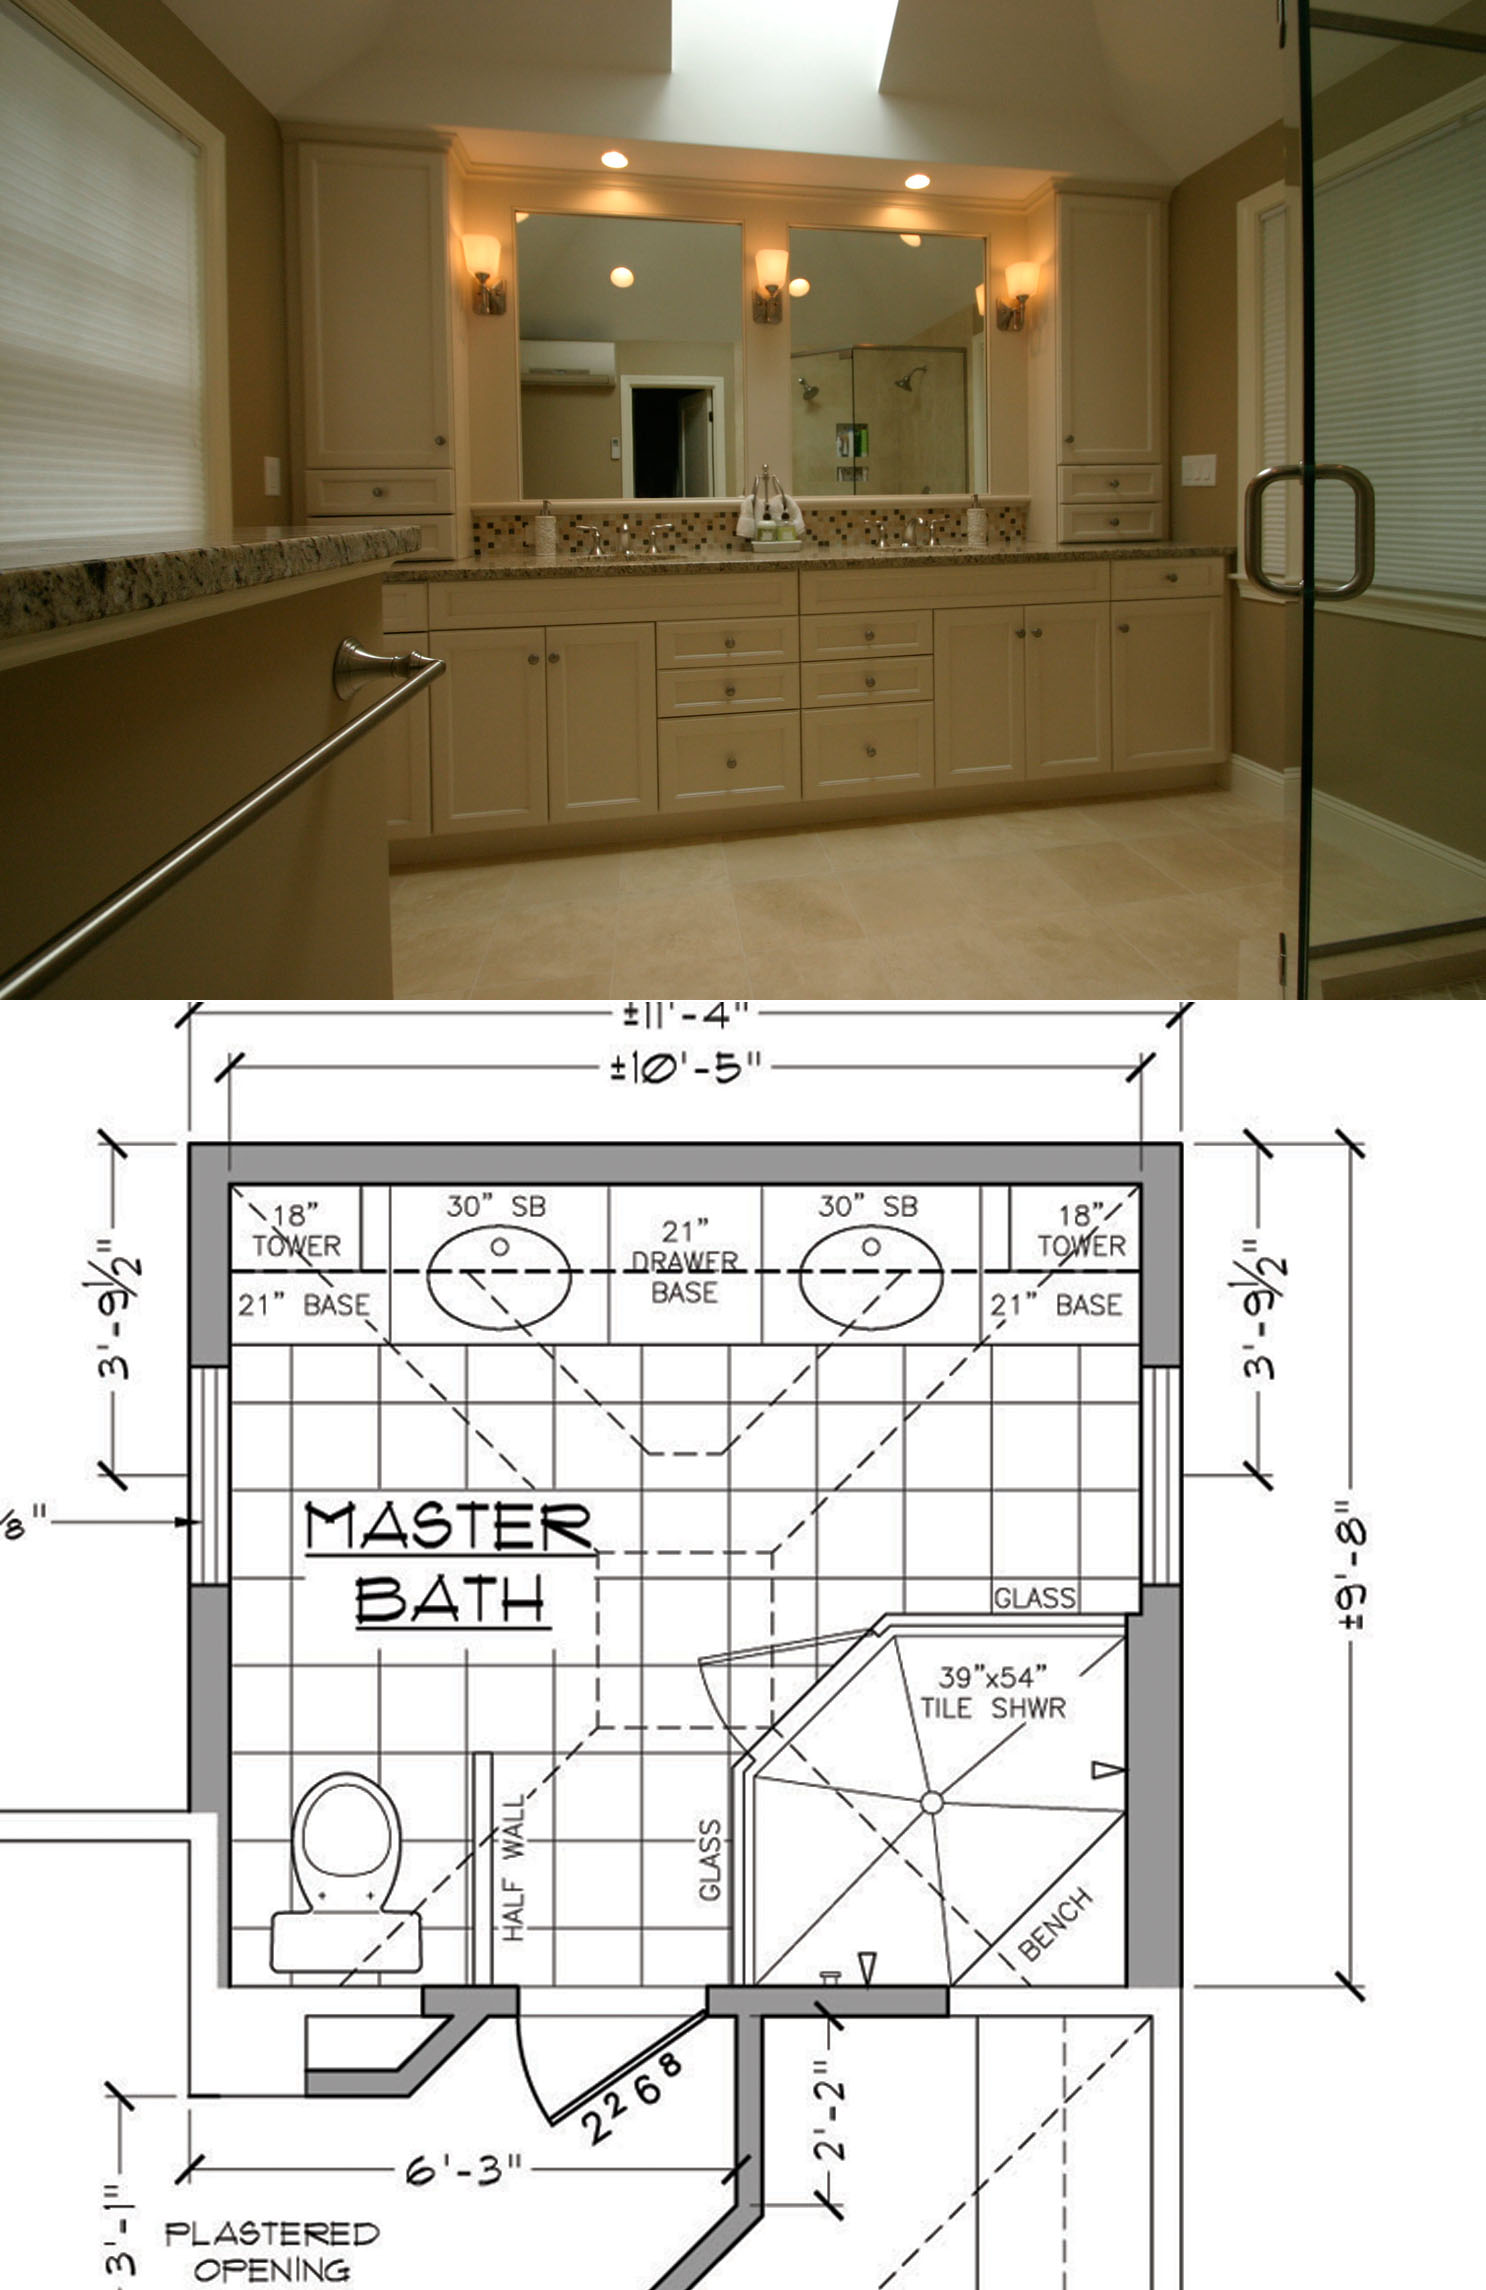 Bathroom Remodel Floor Plans bathroom remodeling archives - 'how-to' & diy blog